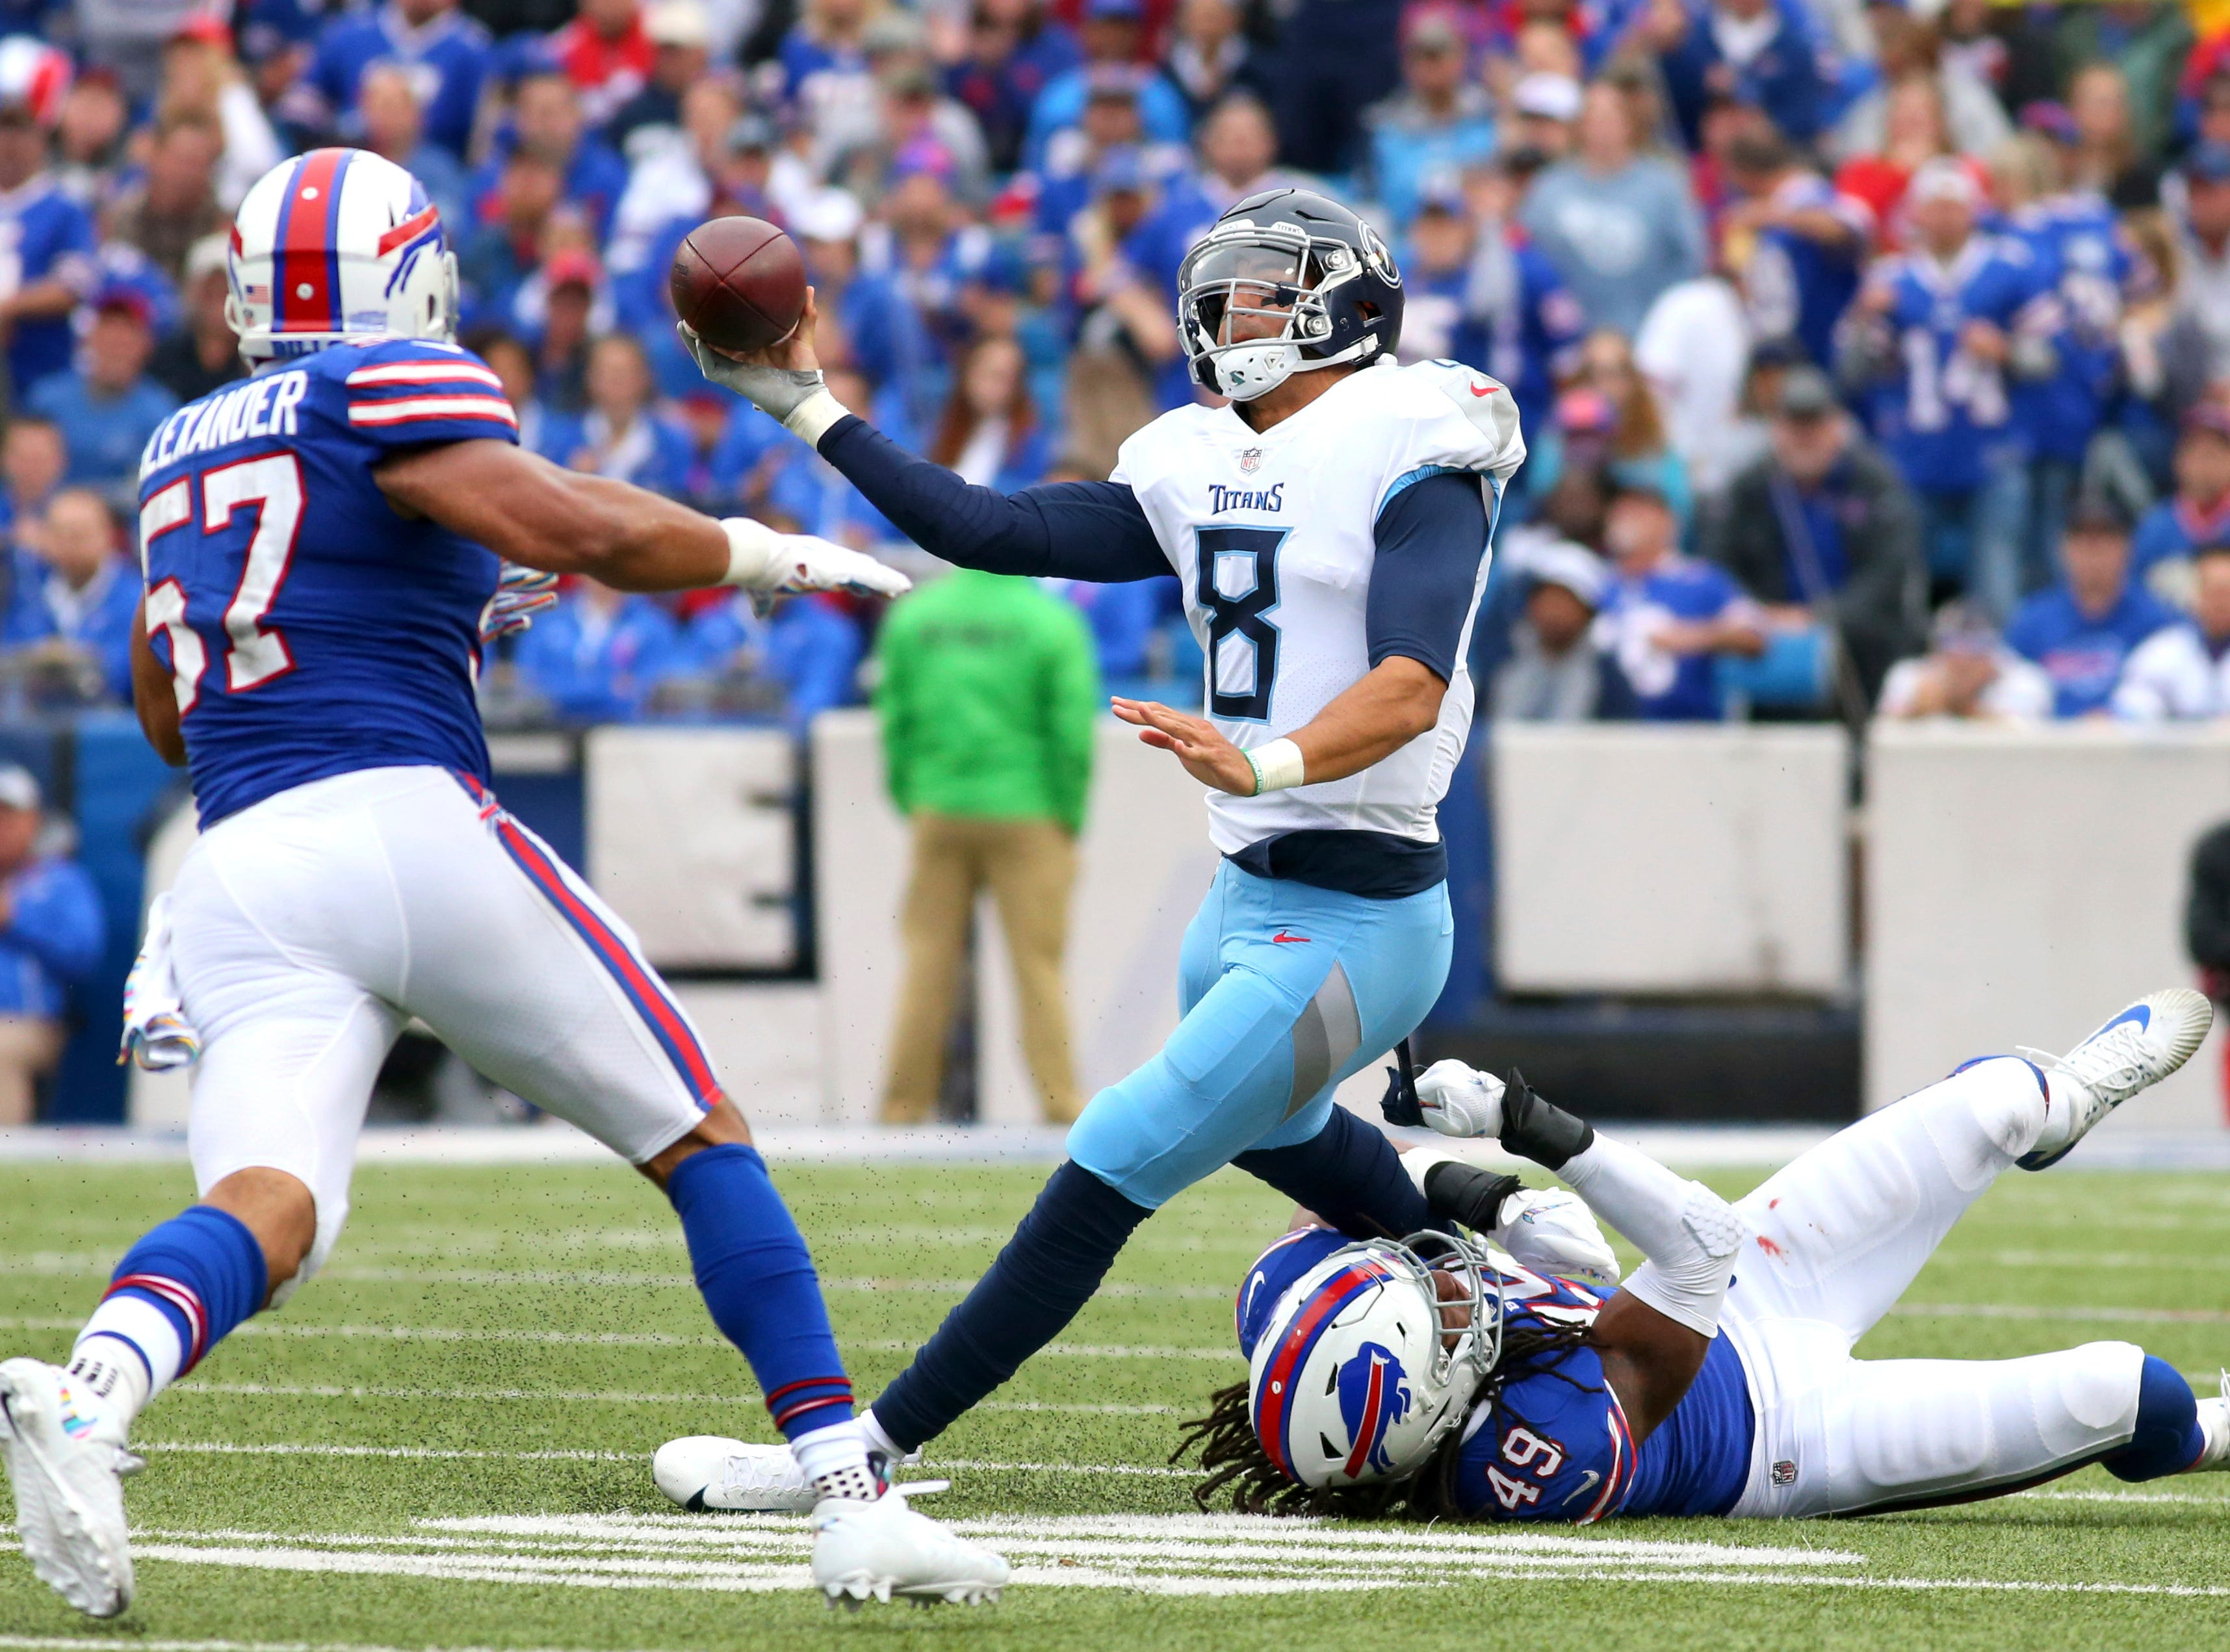 Tennessee Titans quarterback Marcus Mariota (8) tries to make a pass as Buffalo Bills linebacker Tremaine Edmunds (49) makes the hit during the second half of an NFL football game, Sunday, Oct. 7, 2018, in Orchard Park, N.Y. Bills' Lorenzo Alexander (57) helps defend on the play. (AP Photo/Jeffrey T. Barnes)